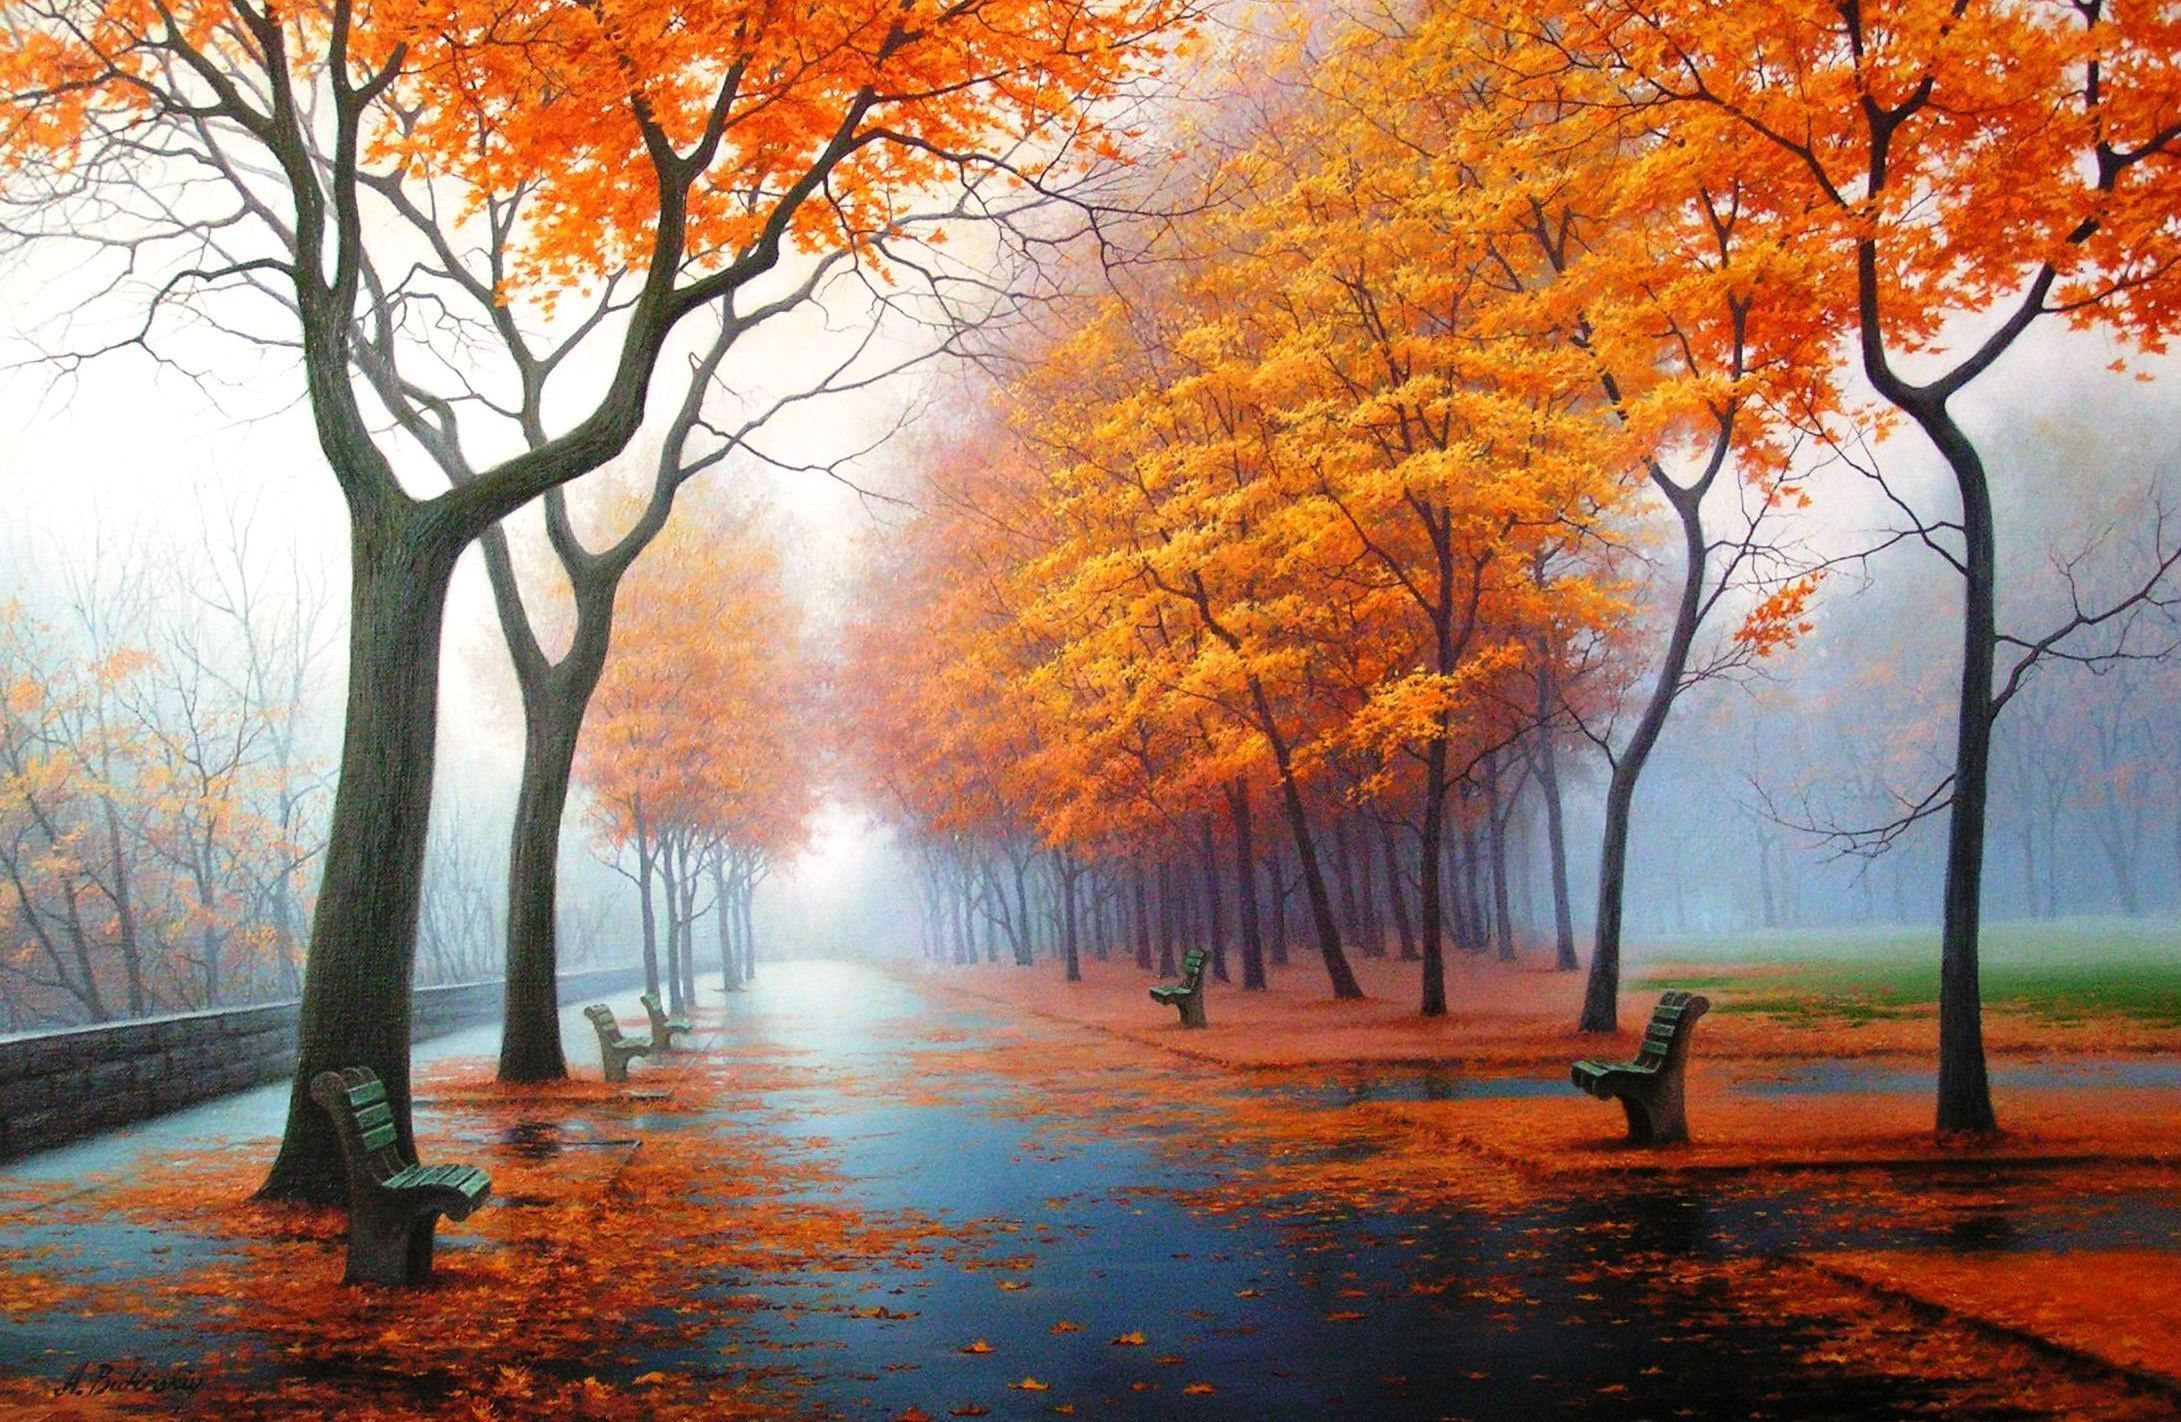 Autumn Beautiful Nature Fall Images Beautiful Pictures